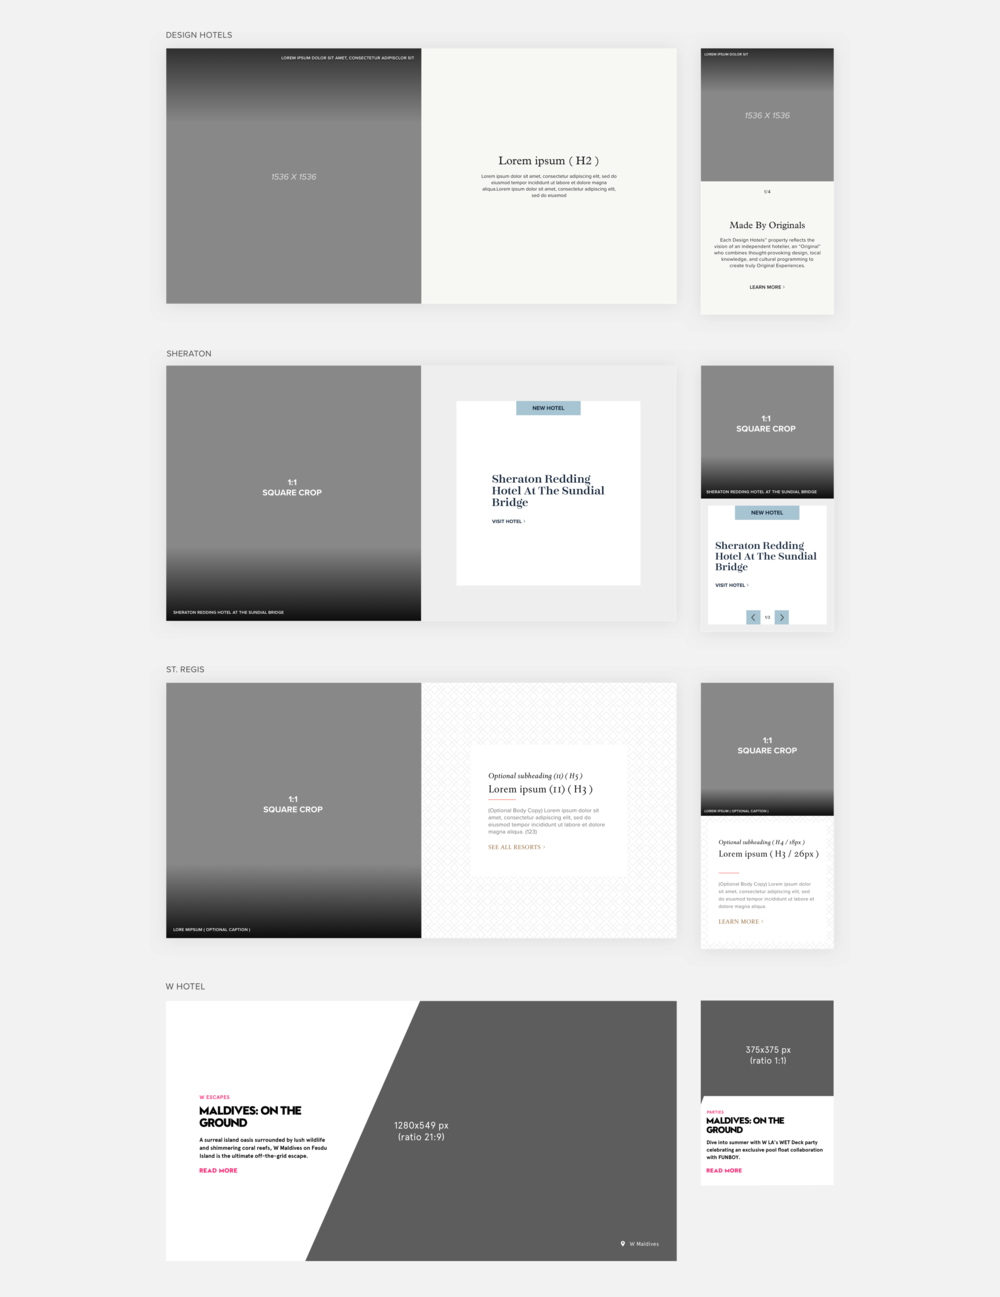 Marriott MBE - Components By Brand.png